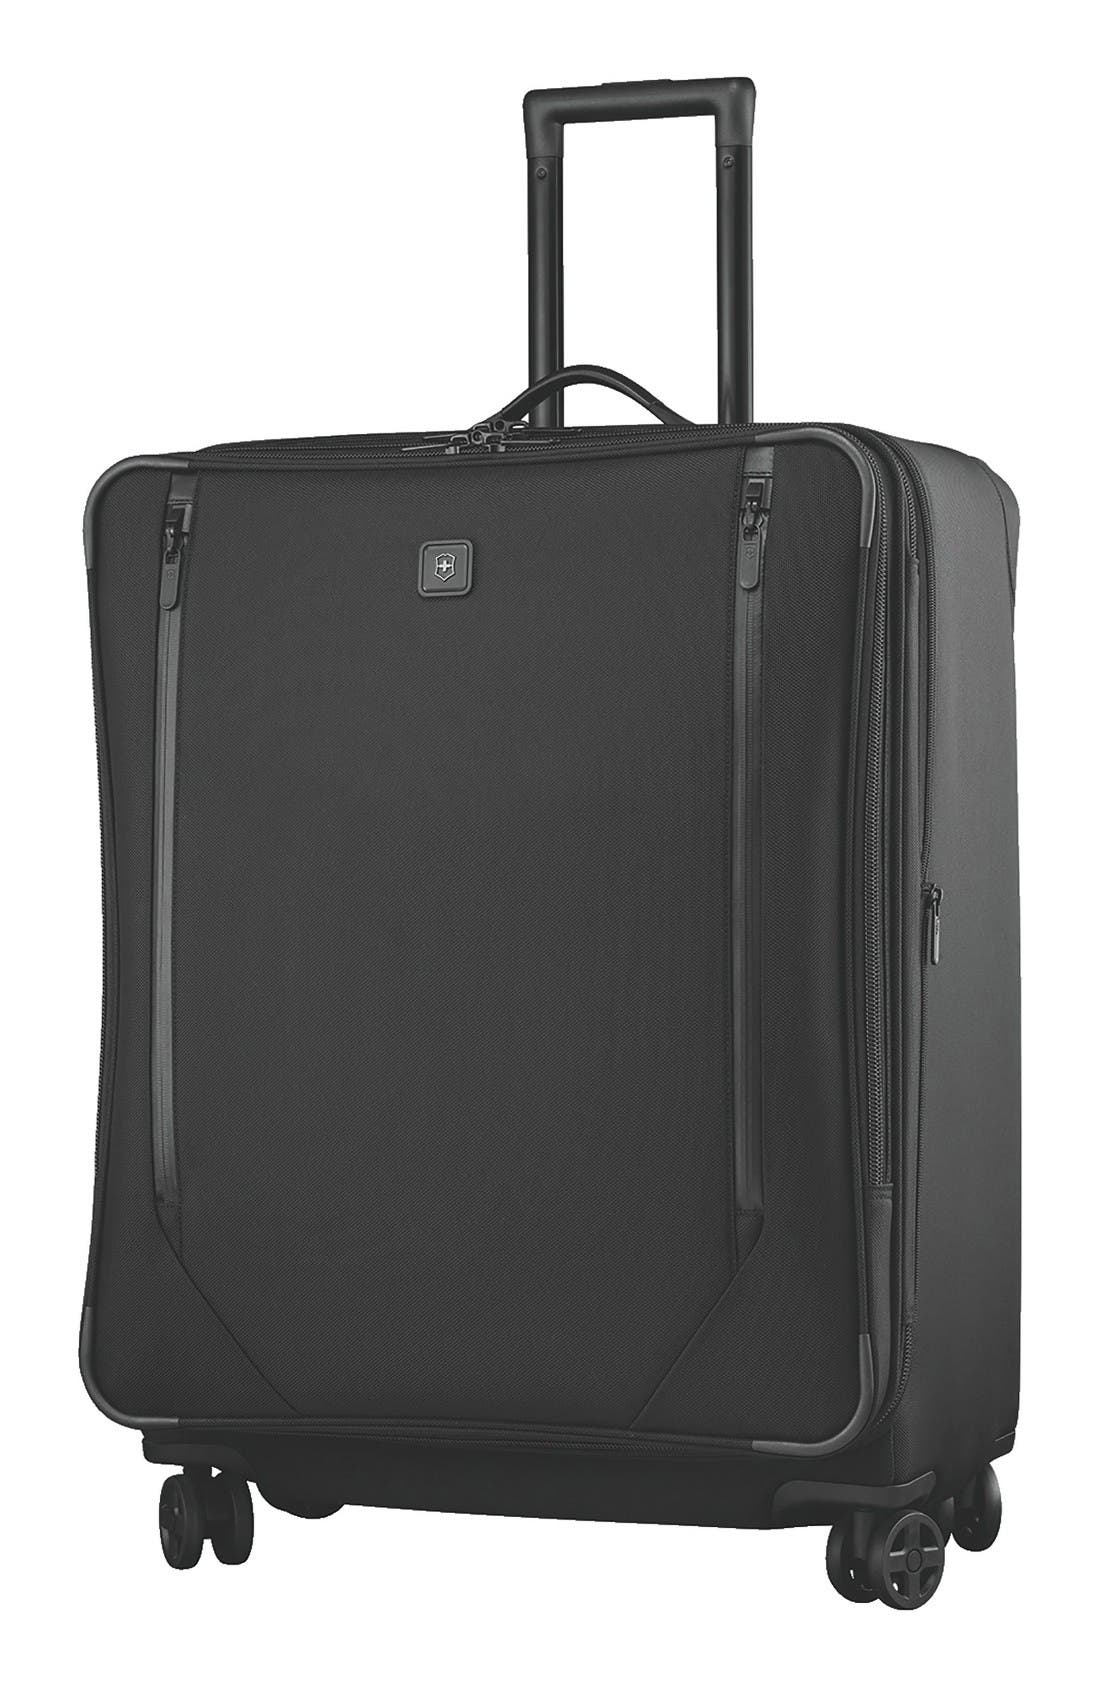 Victorinox Swiss Army® Lexicon 2.0 28 Inch Wheeled Suitcase